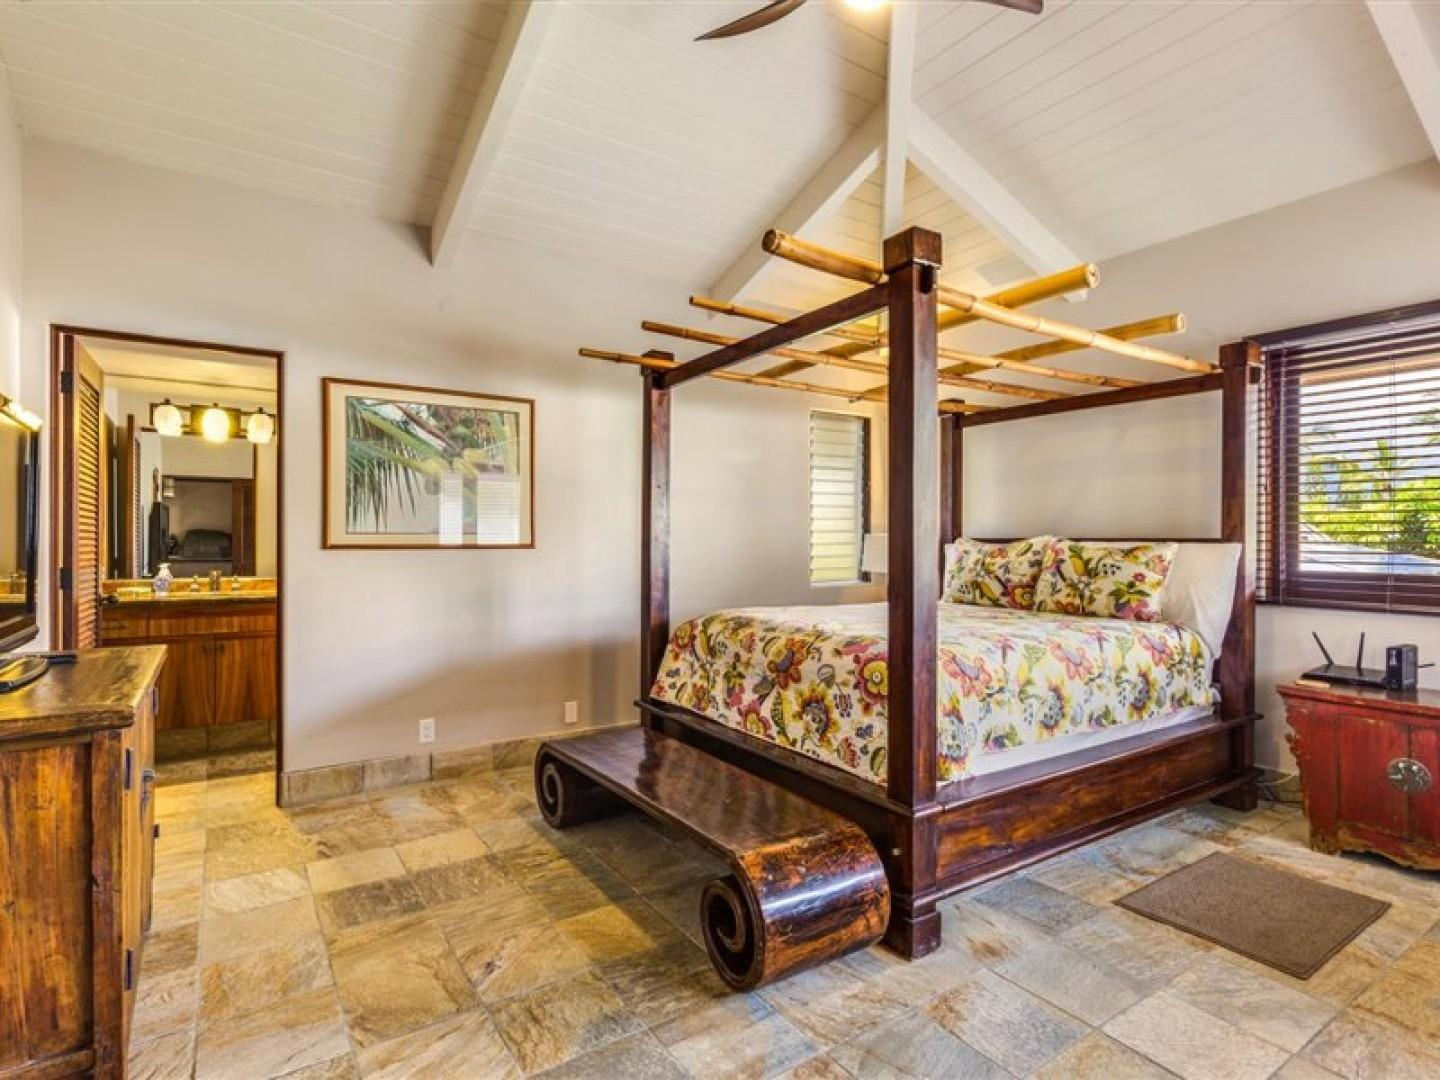 Guest bedroom equipped with Queen bed, A/C, TV and ensuite